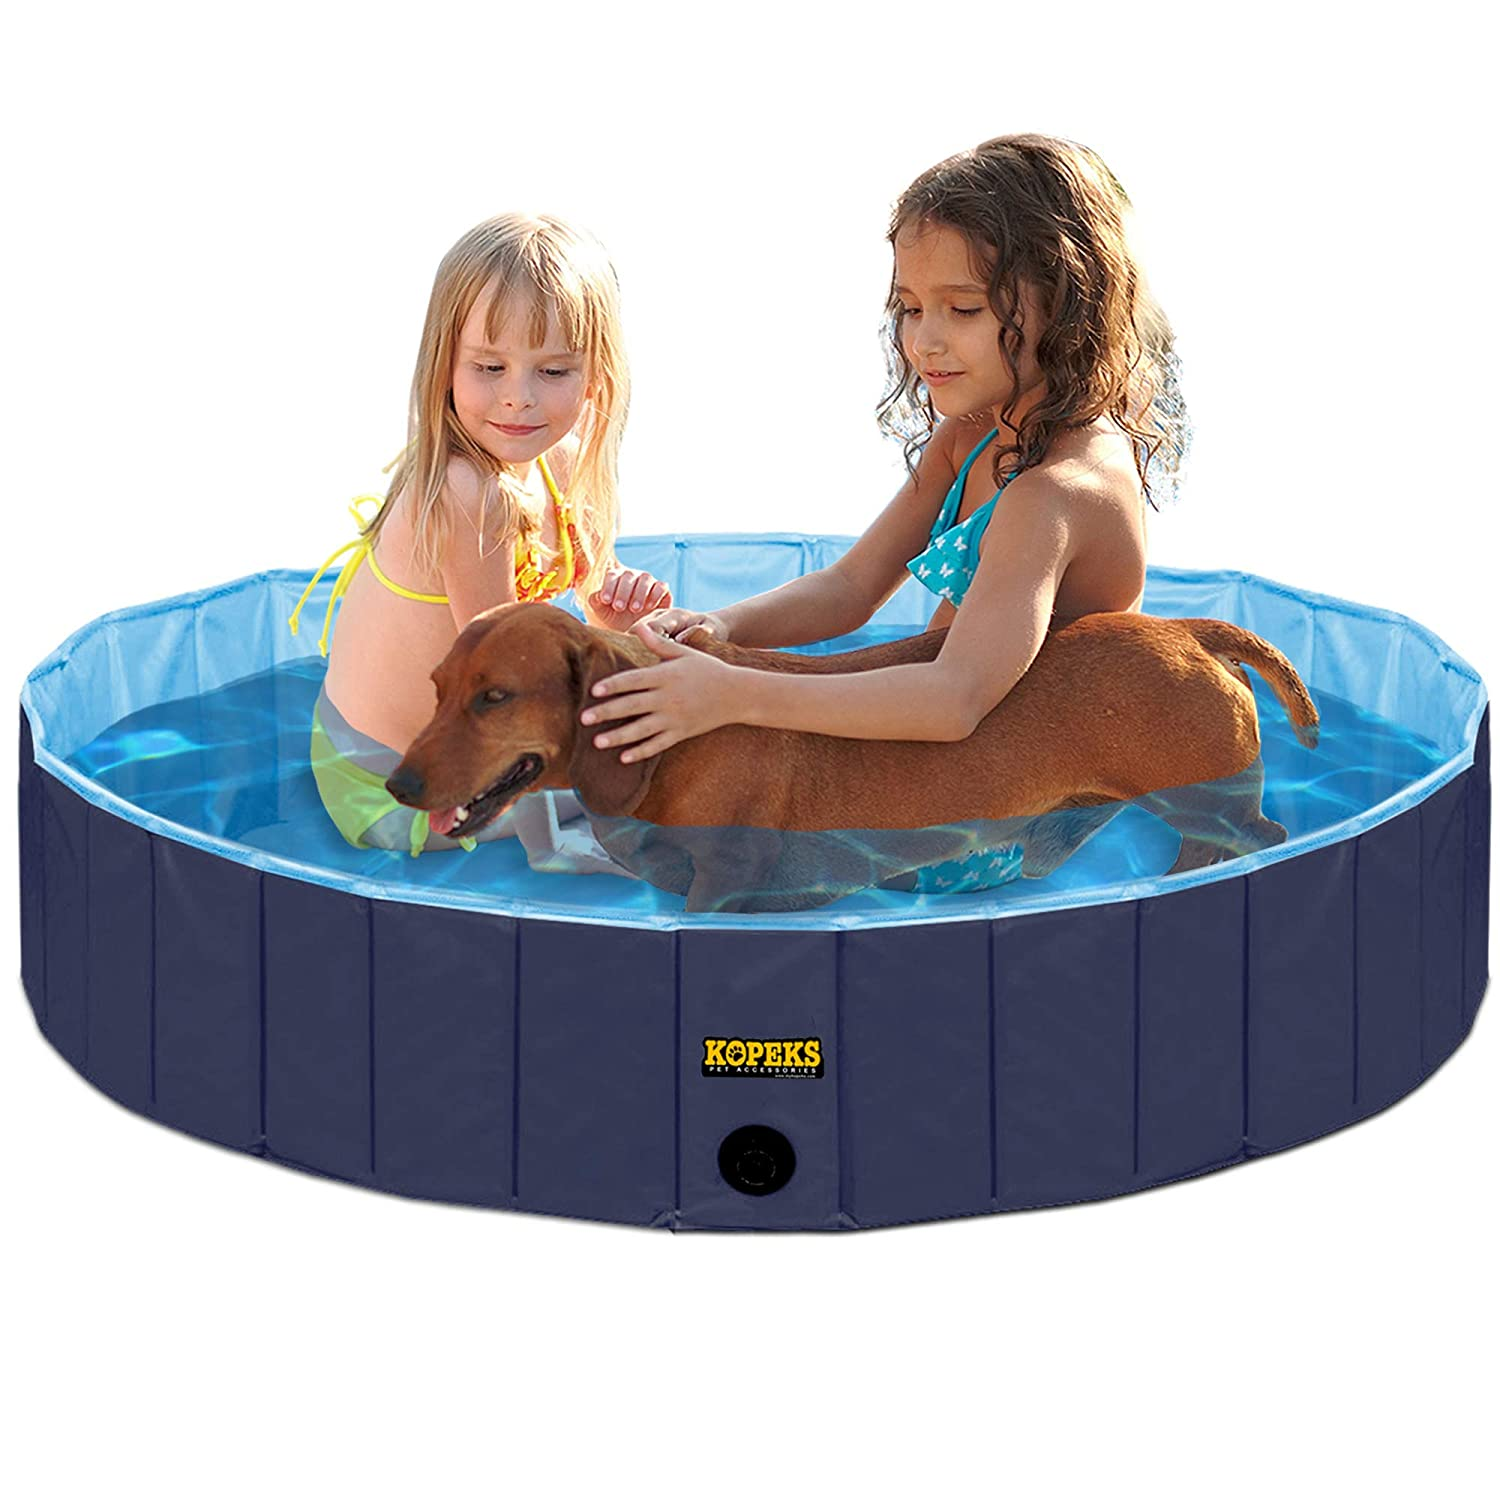 bluee Small bluee Small Outdoor Swimming Pool Bathing Tub Portable Foldable Ideal for Pets Small 32  x 8